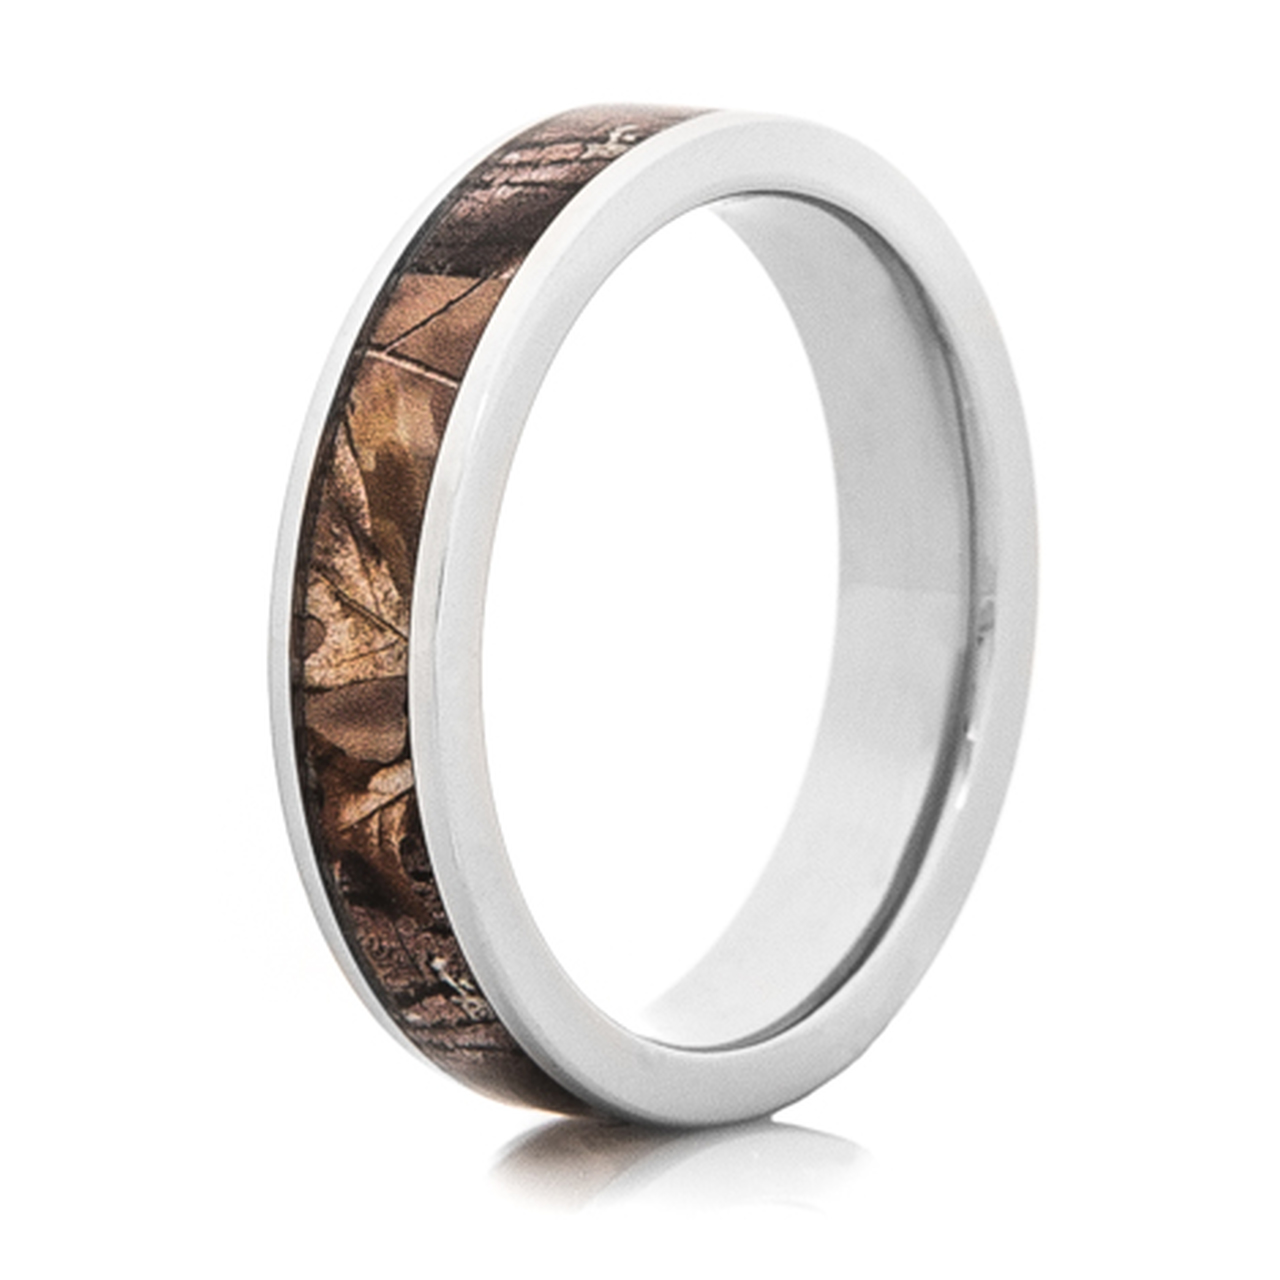 Women's Camo Rings with Pattern Options